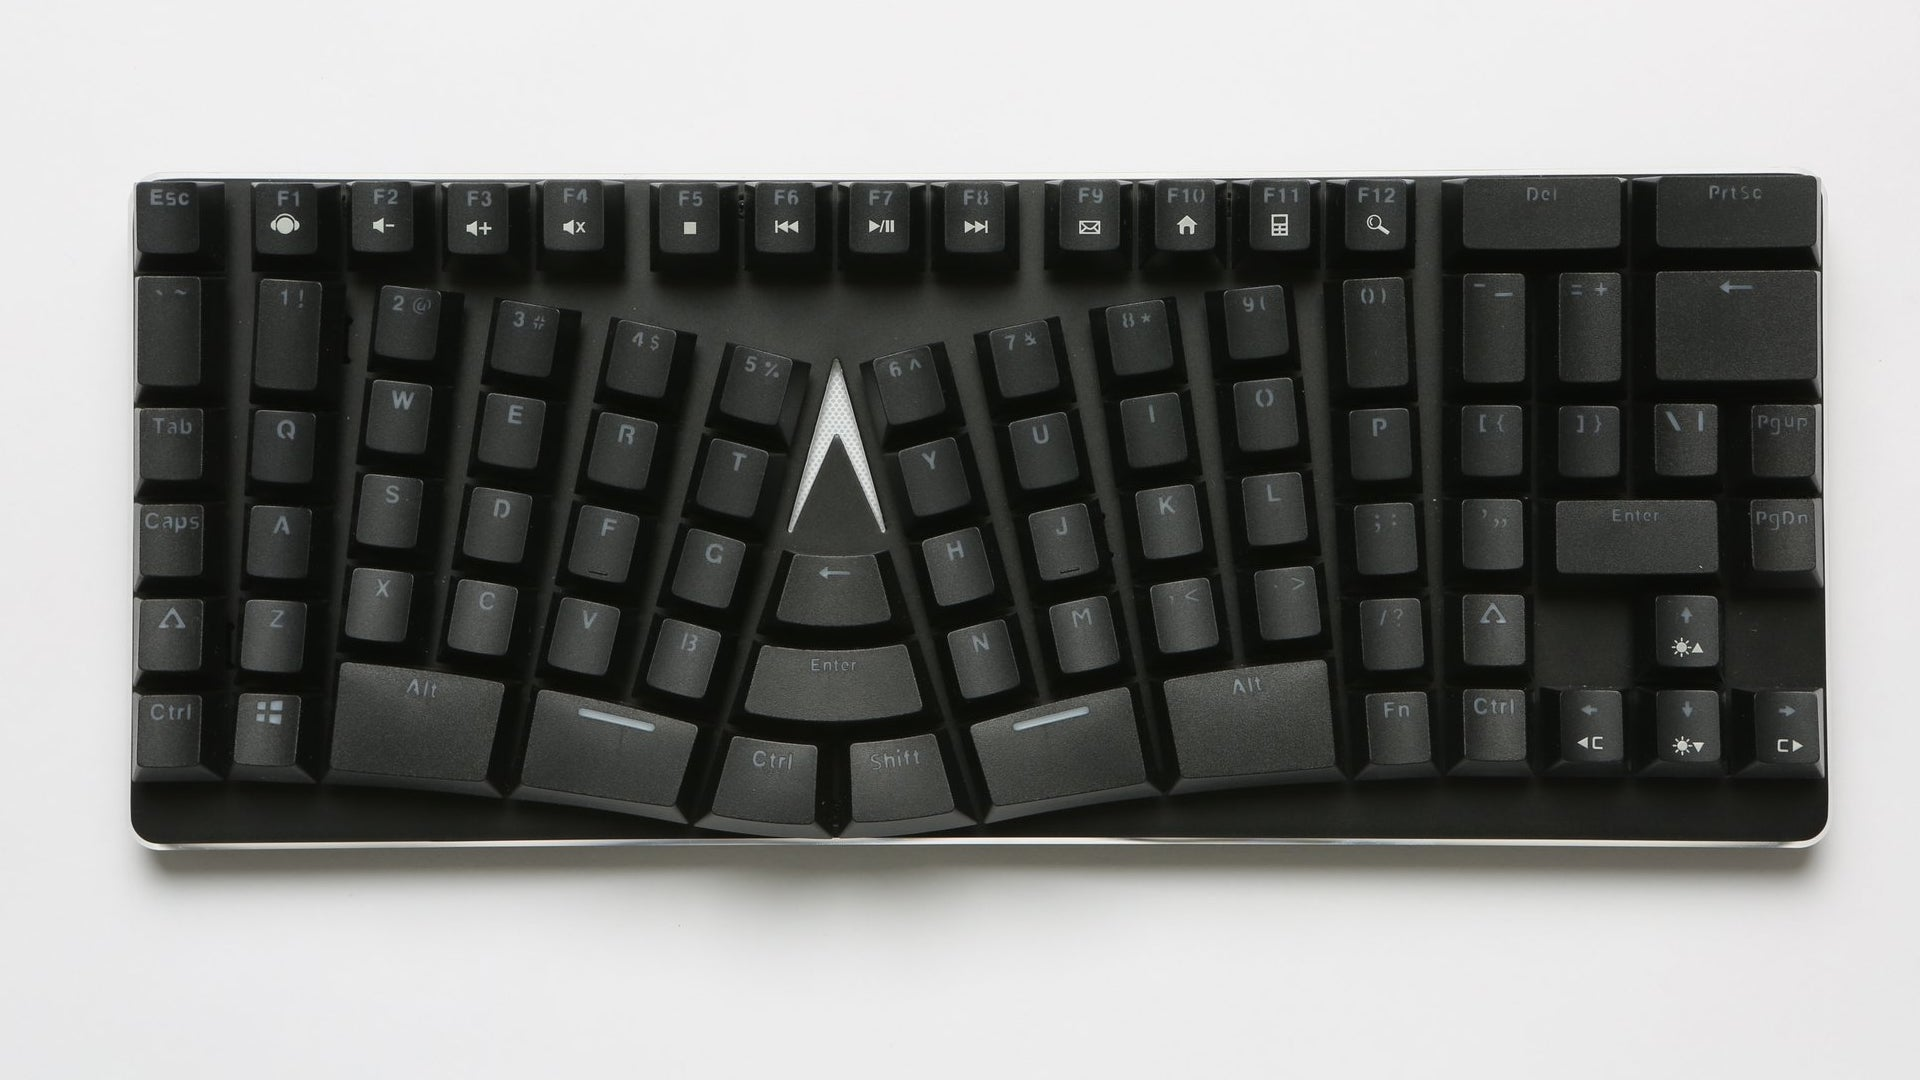 This Weird Warped Keyboard Actually Makes A Lot Of Sense